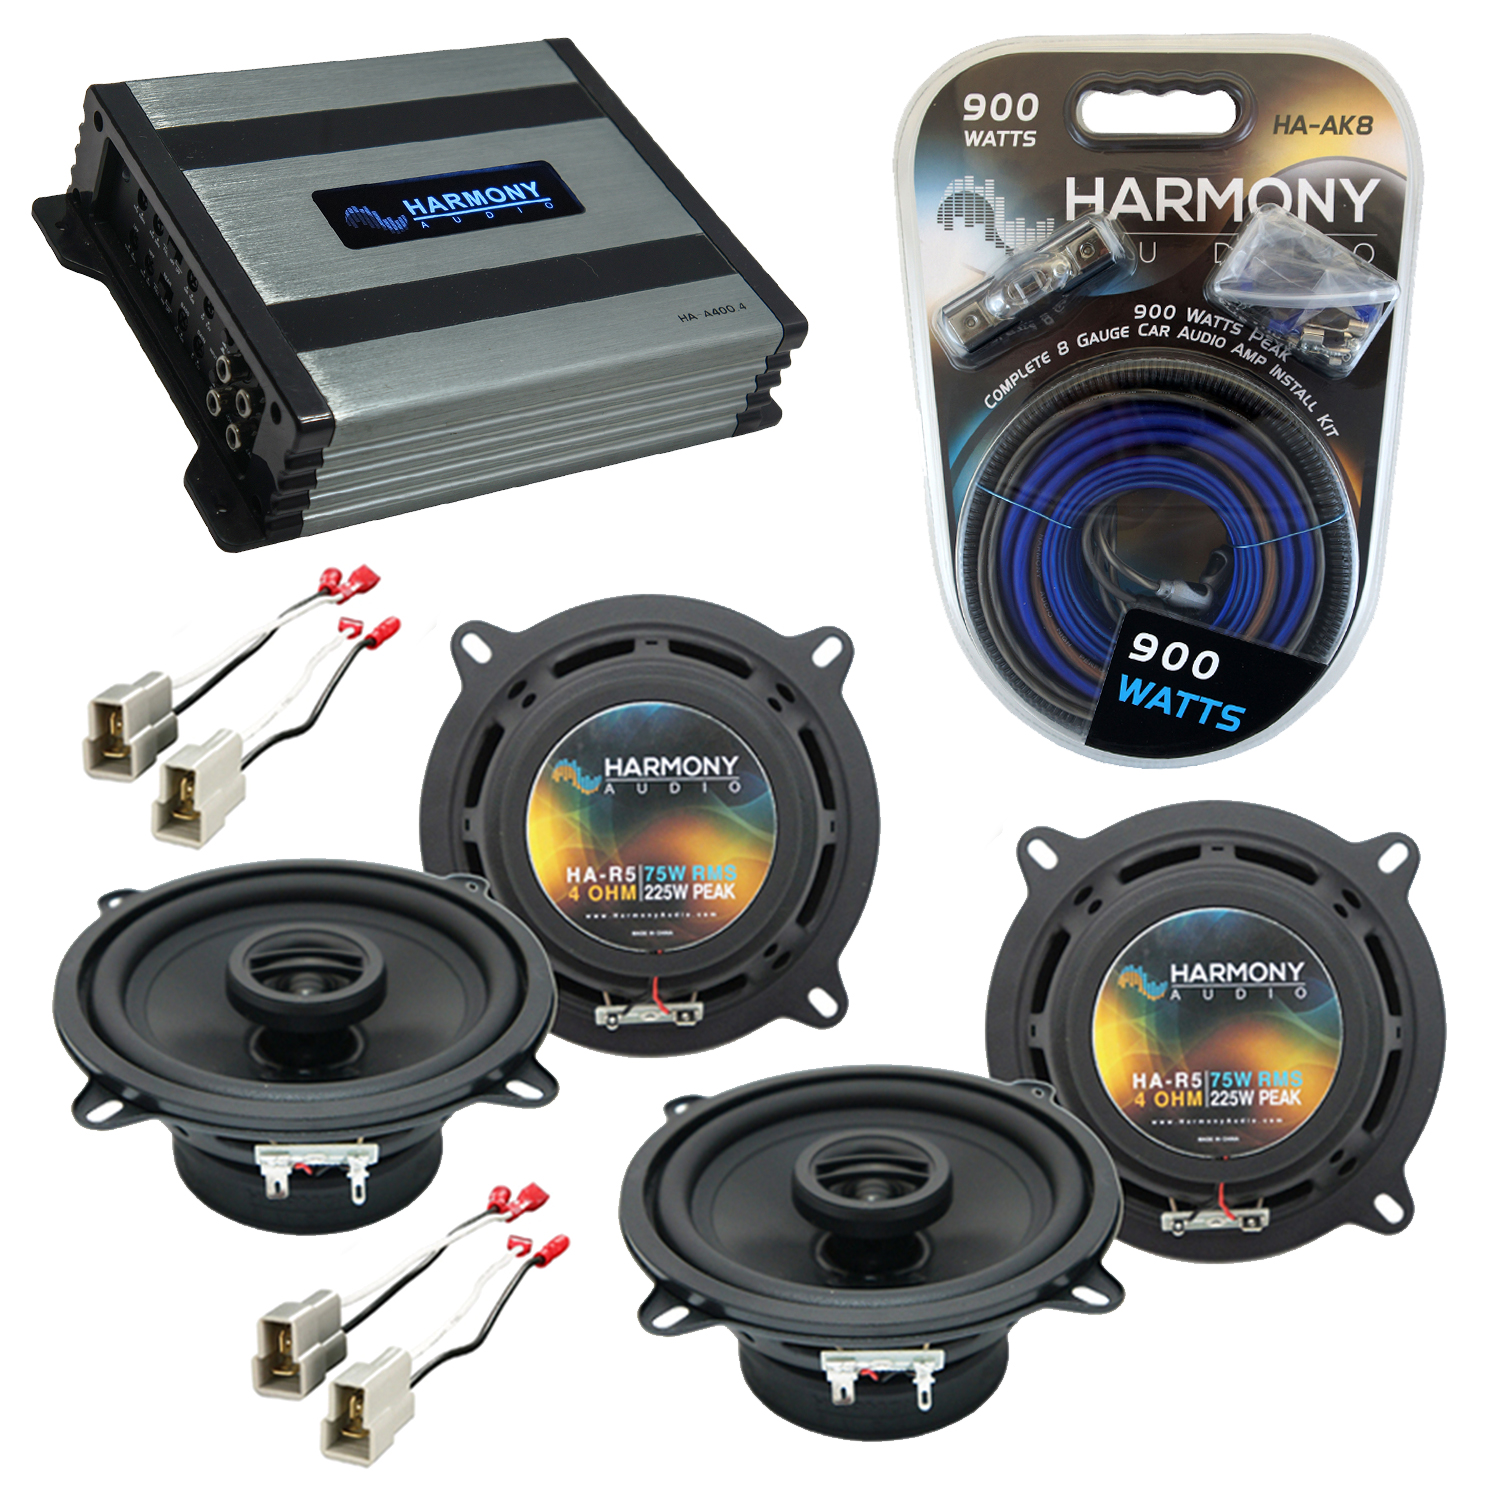 Compatible with Nissan Stanza 1982-1986 Factory Speaker Replacement Harmony (2) R5 & Harmony HA-A400.4